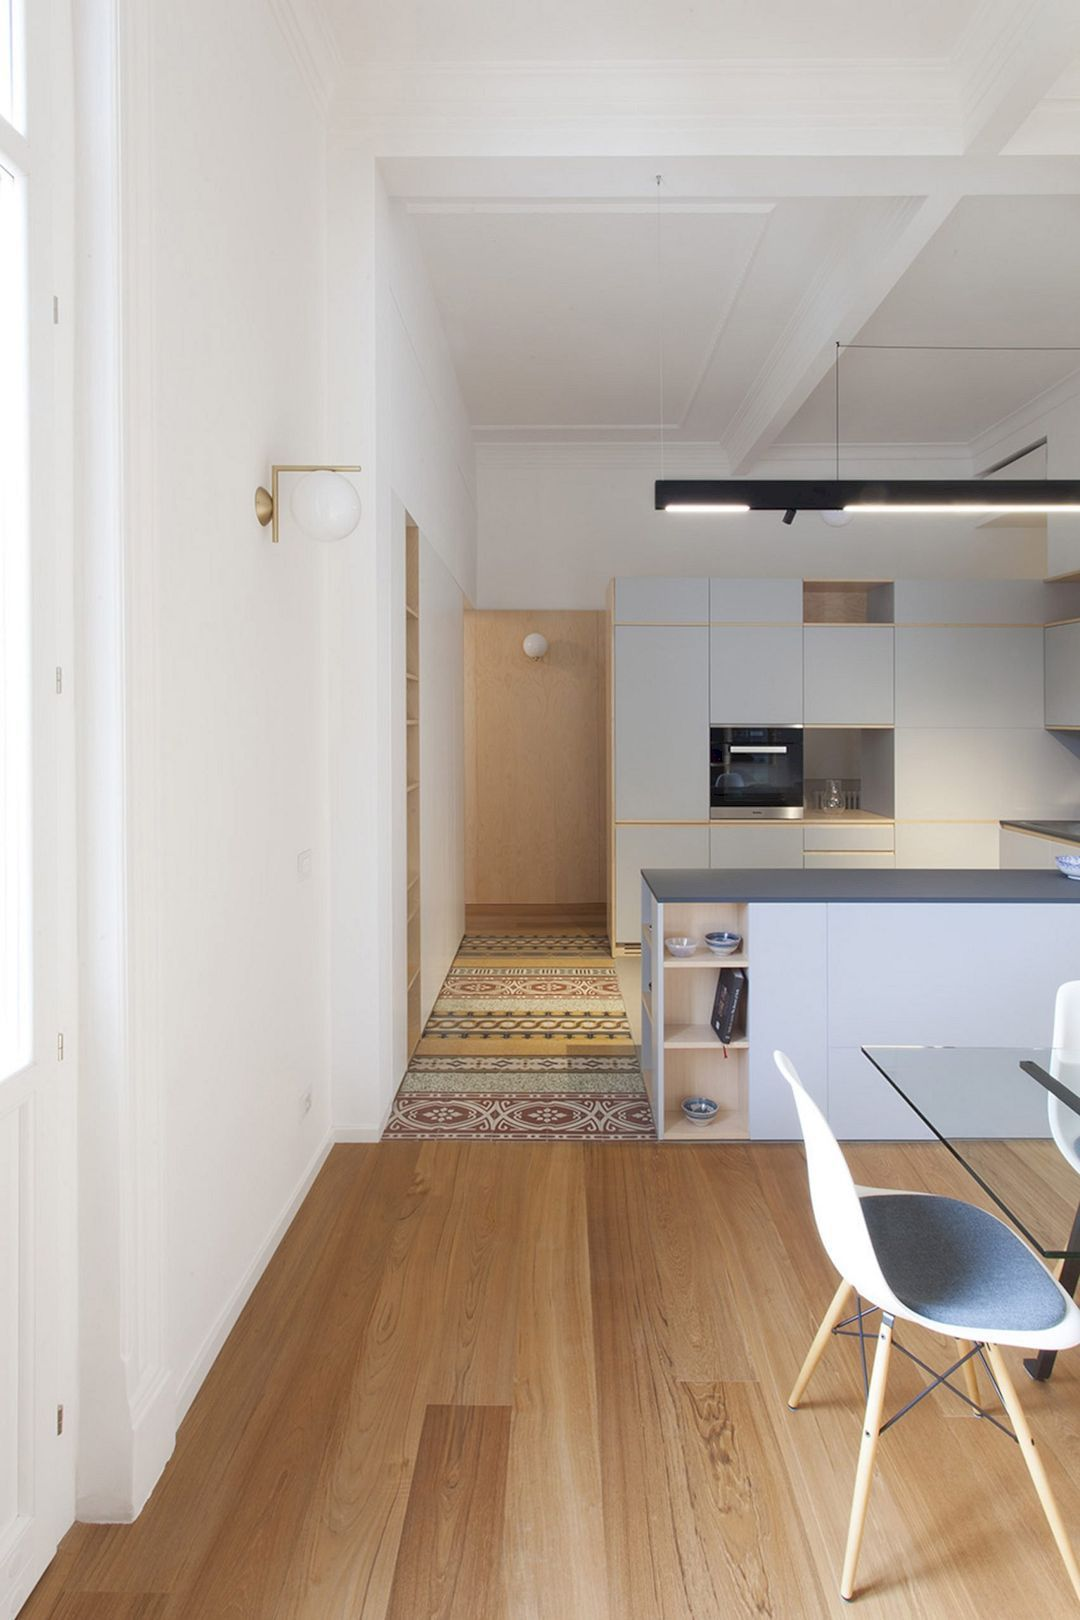 Transforming an Old Sicilian Apartment into a Bright Open Plan Space on